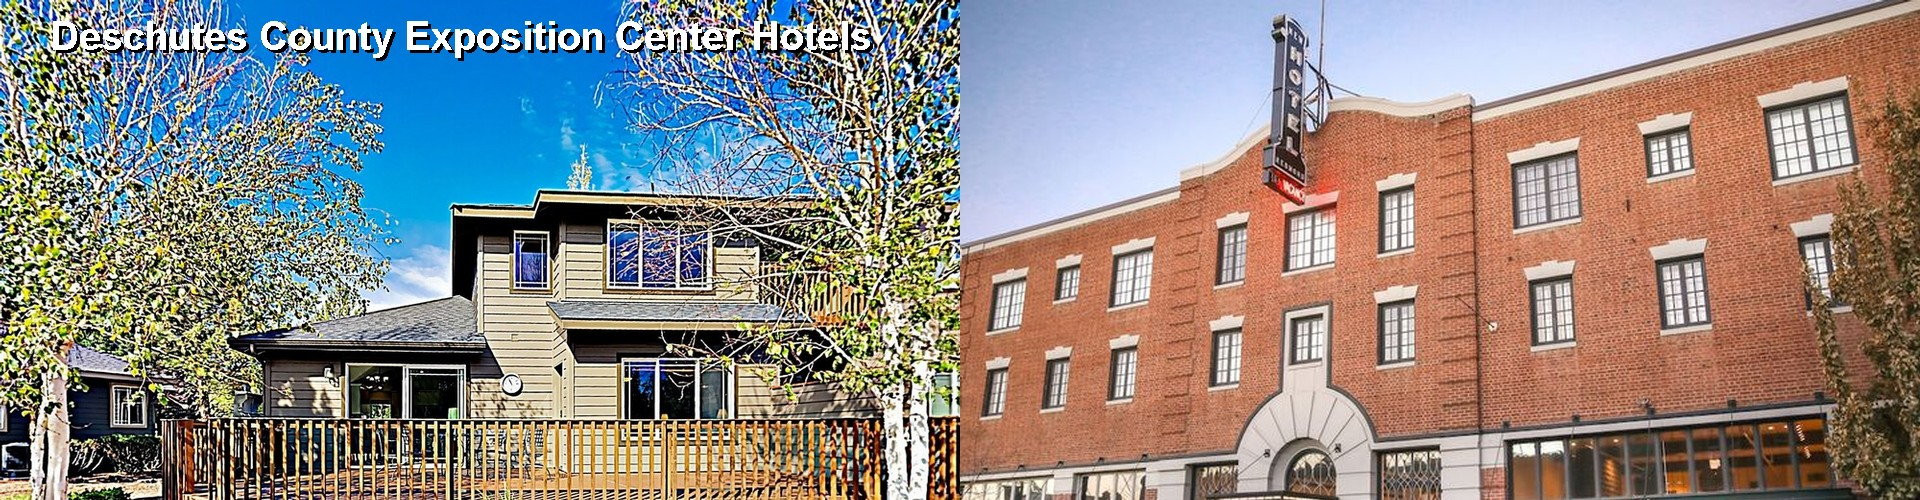 5 Best Hotels near Deschutes County Exposition Center